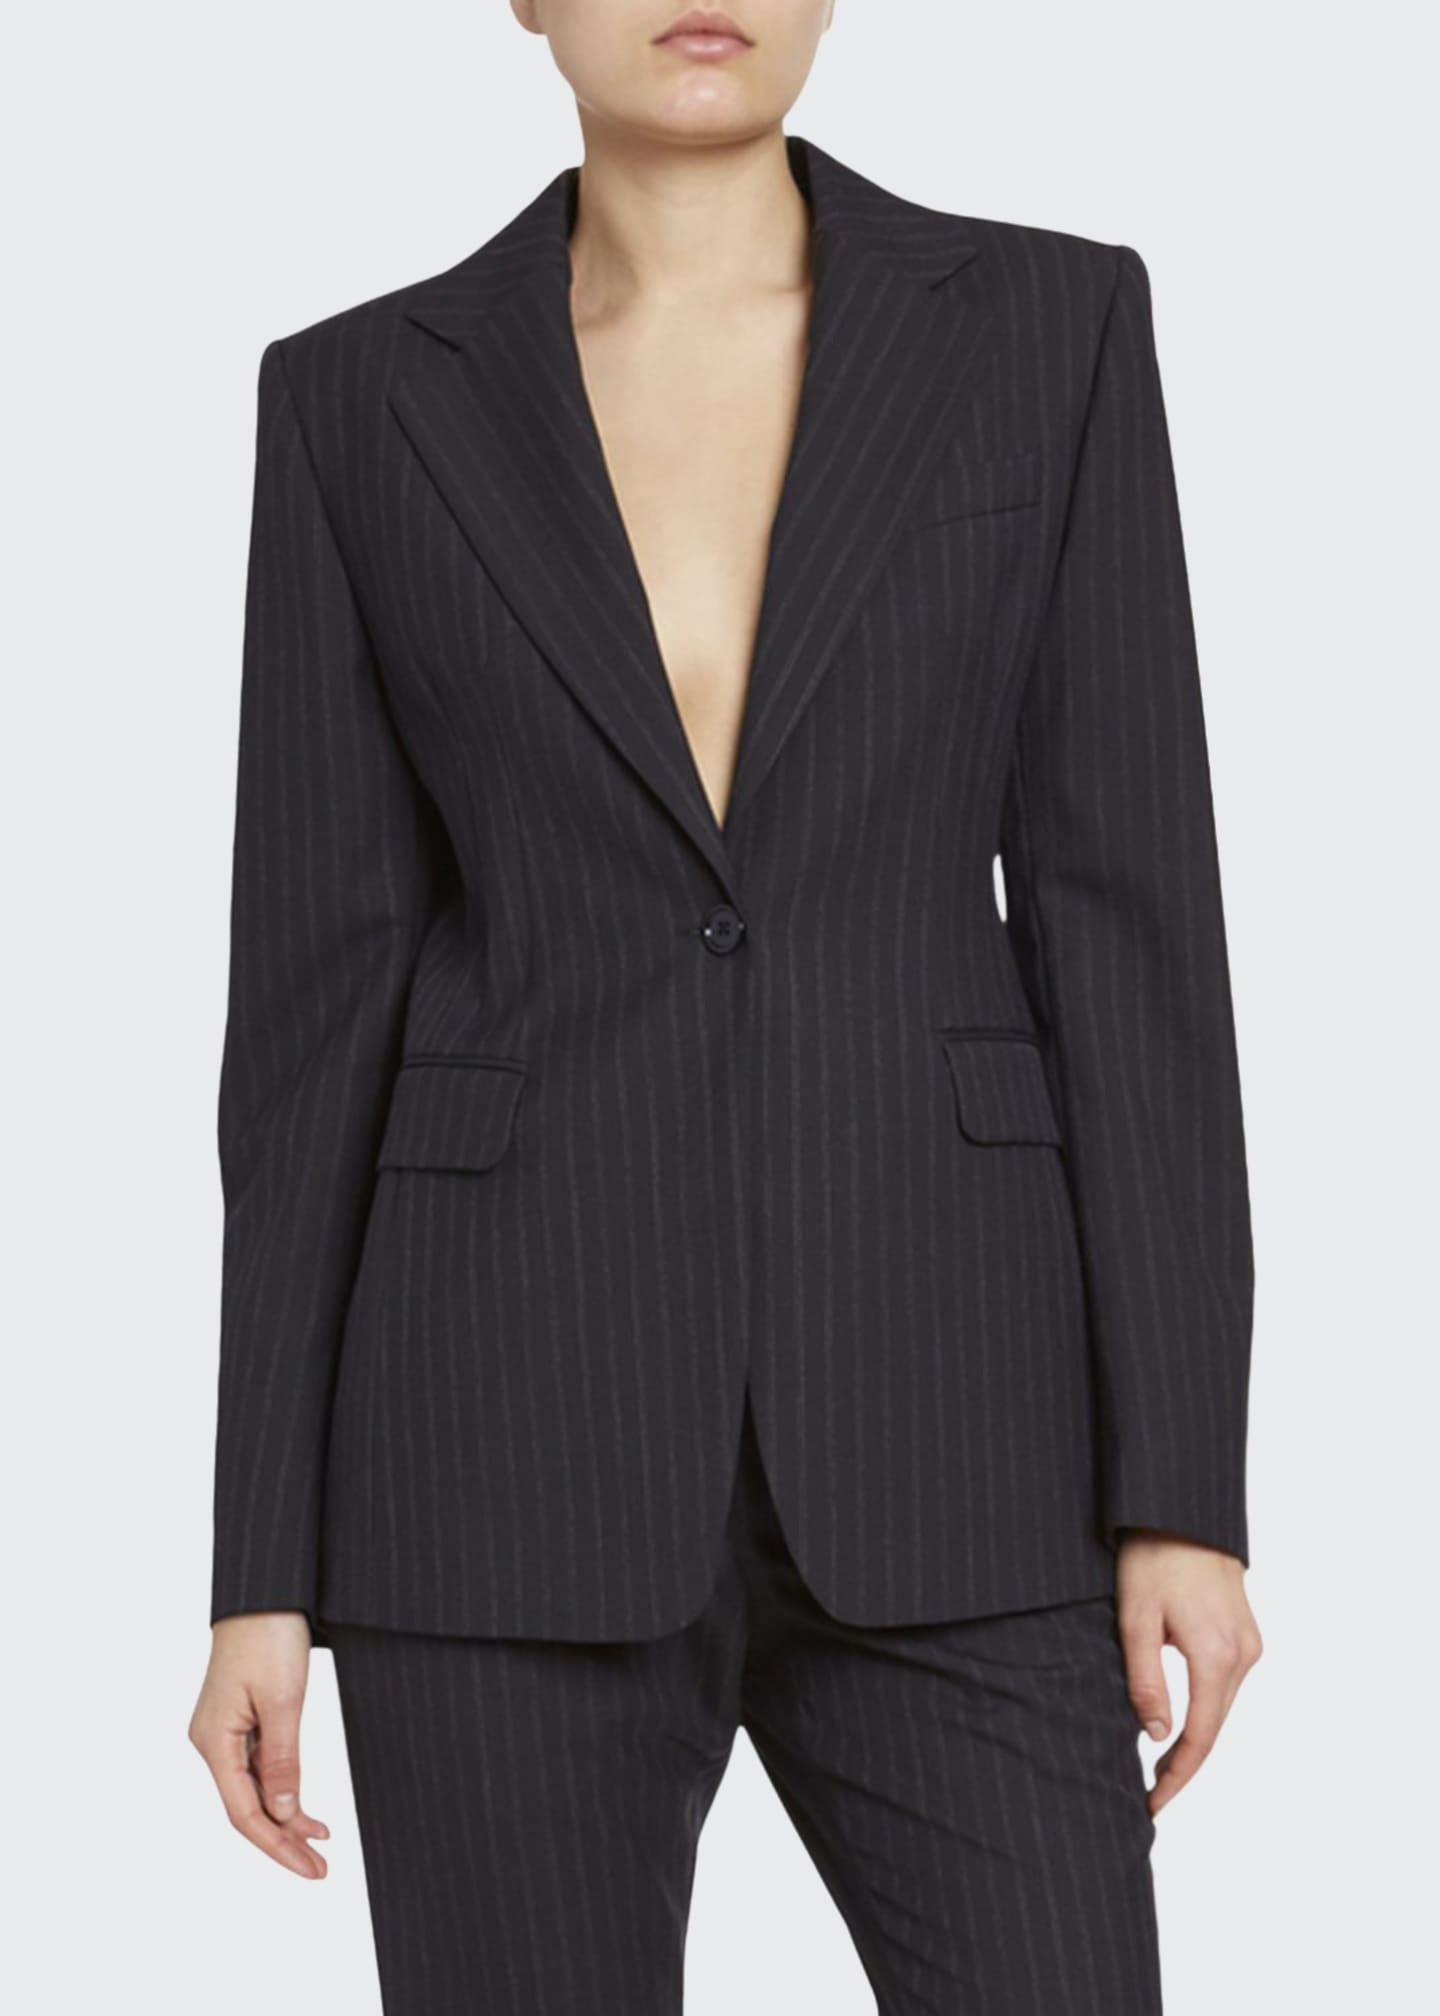 Dries Van Noten Pinstriped One-Button Blazer